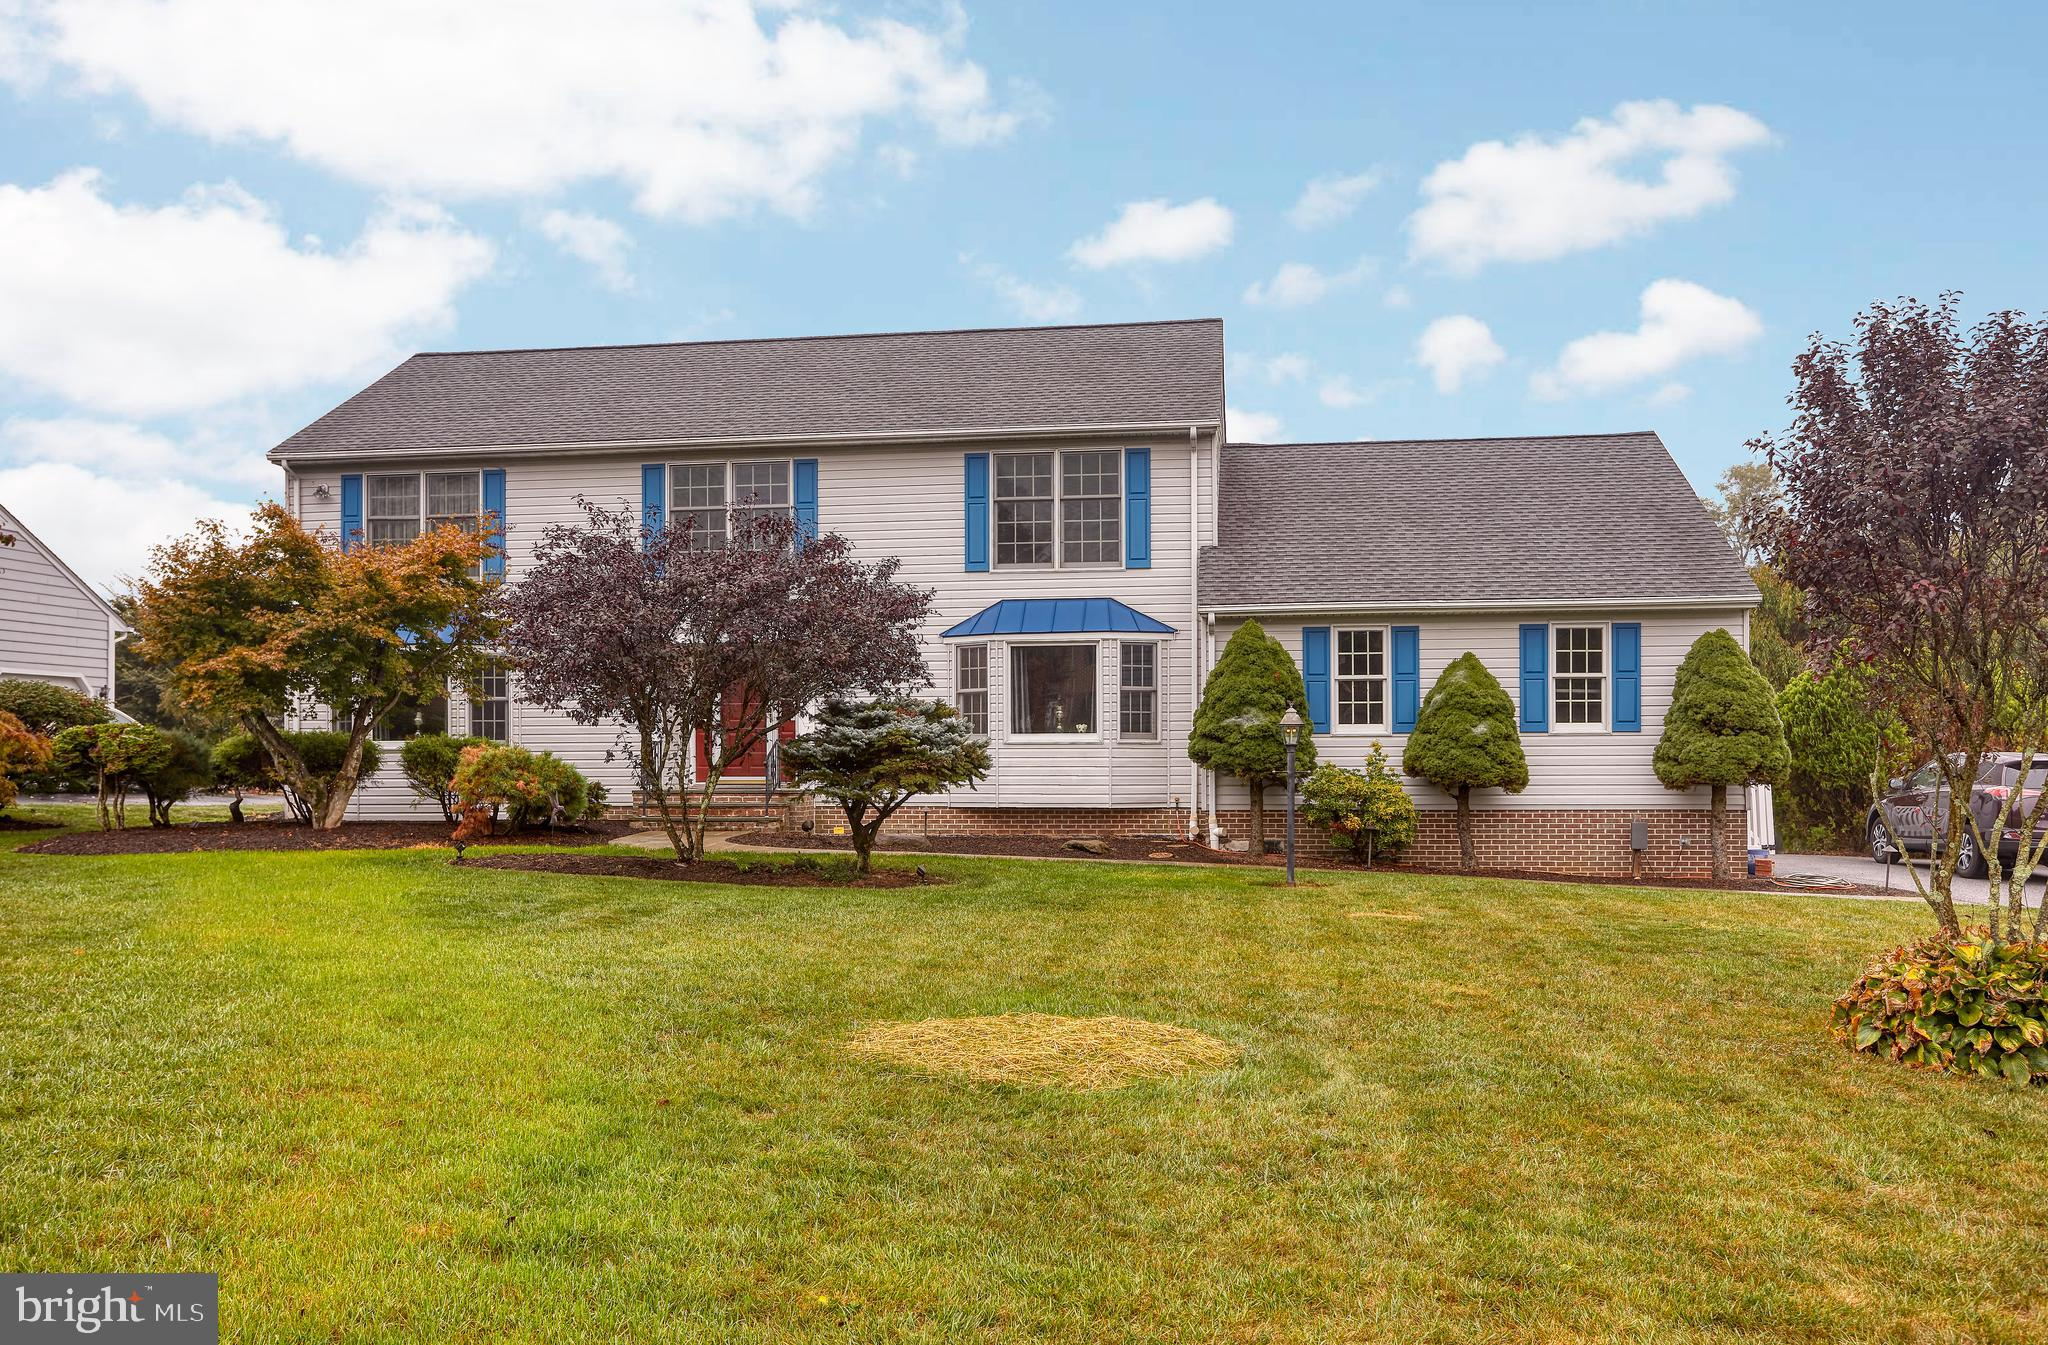 13 COUNTRY MANOR LANE, NEW FREEDOM, PA 17349